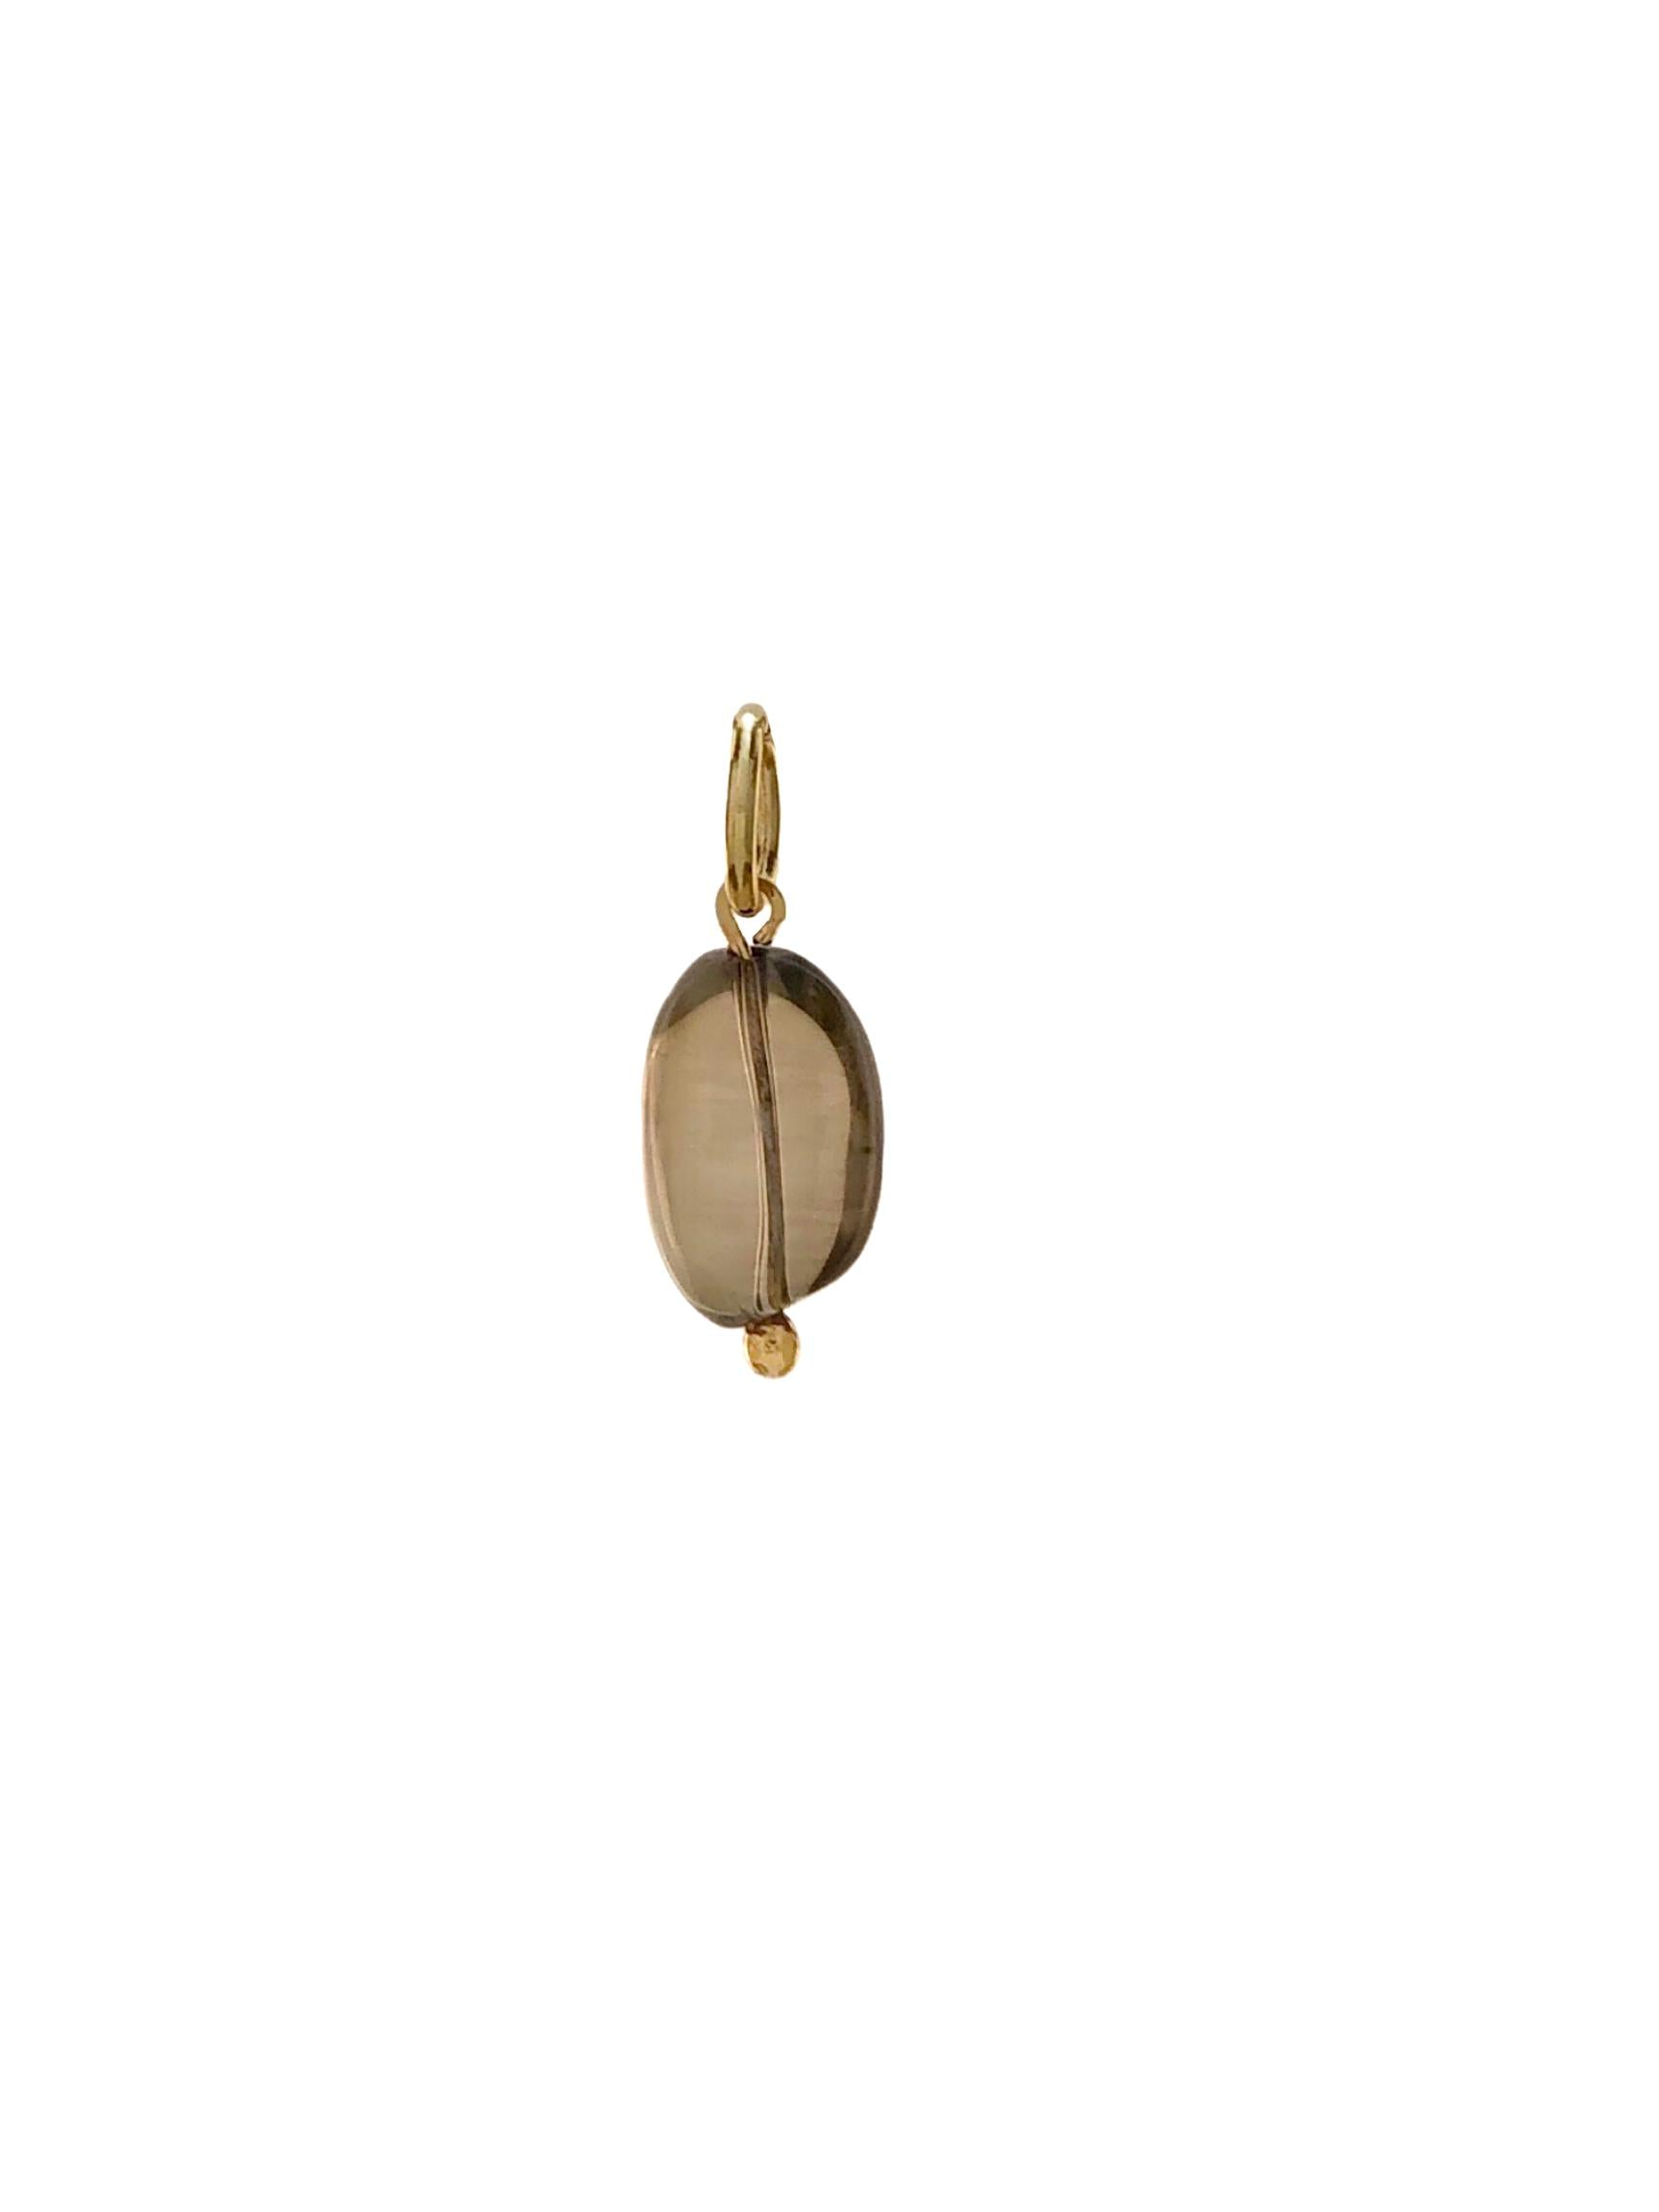 Smoky Quartz Pebble Necklace Pendant Charm-Pendant Charms-JAREDJAMIN Jewelry Online-JAREDJAMIN - Fashion Jewelry & Accessories